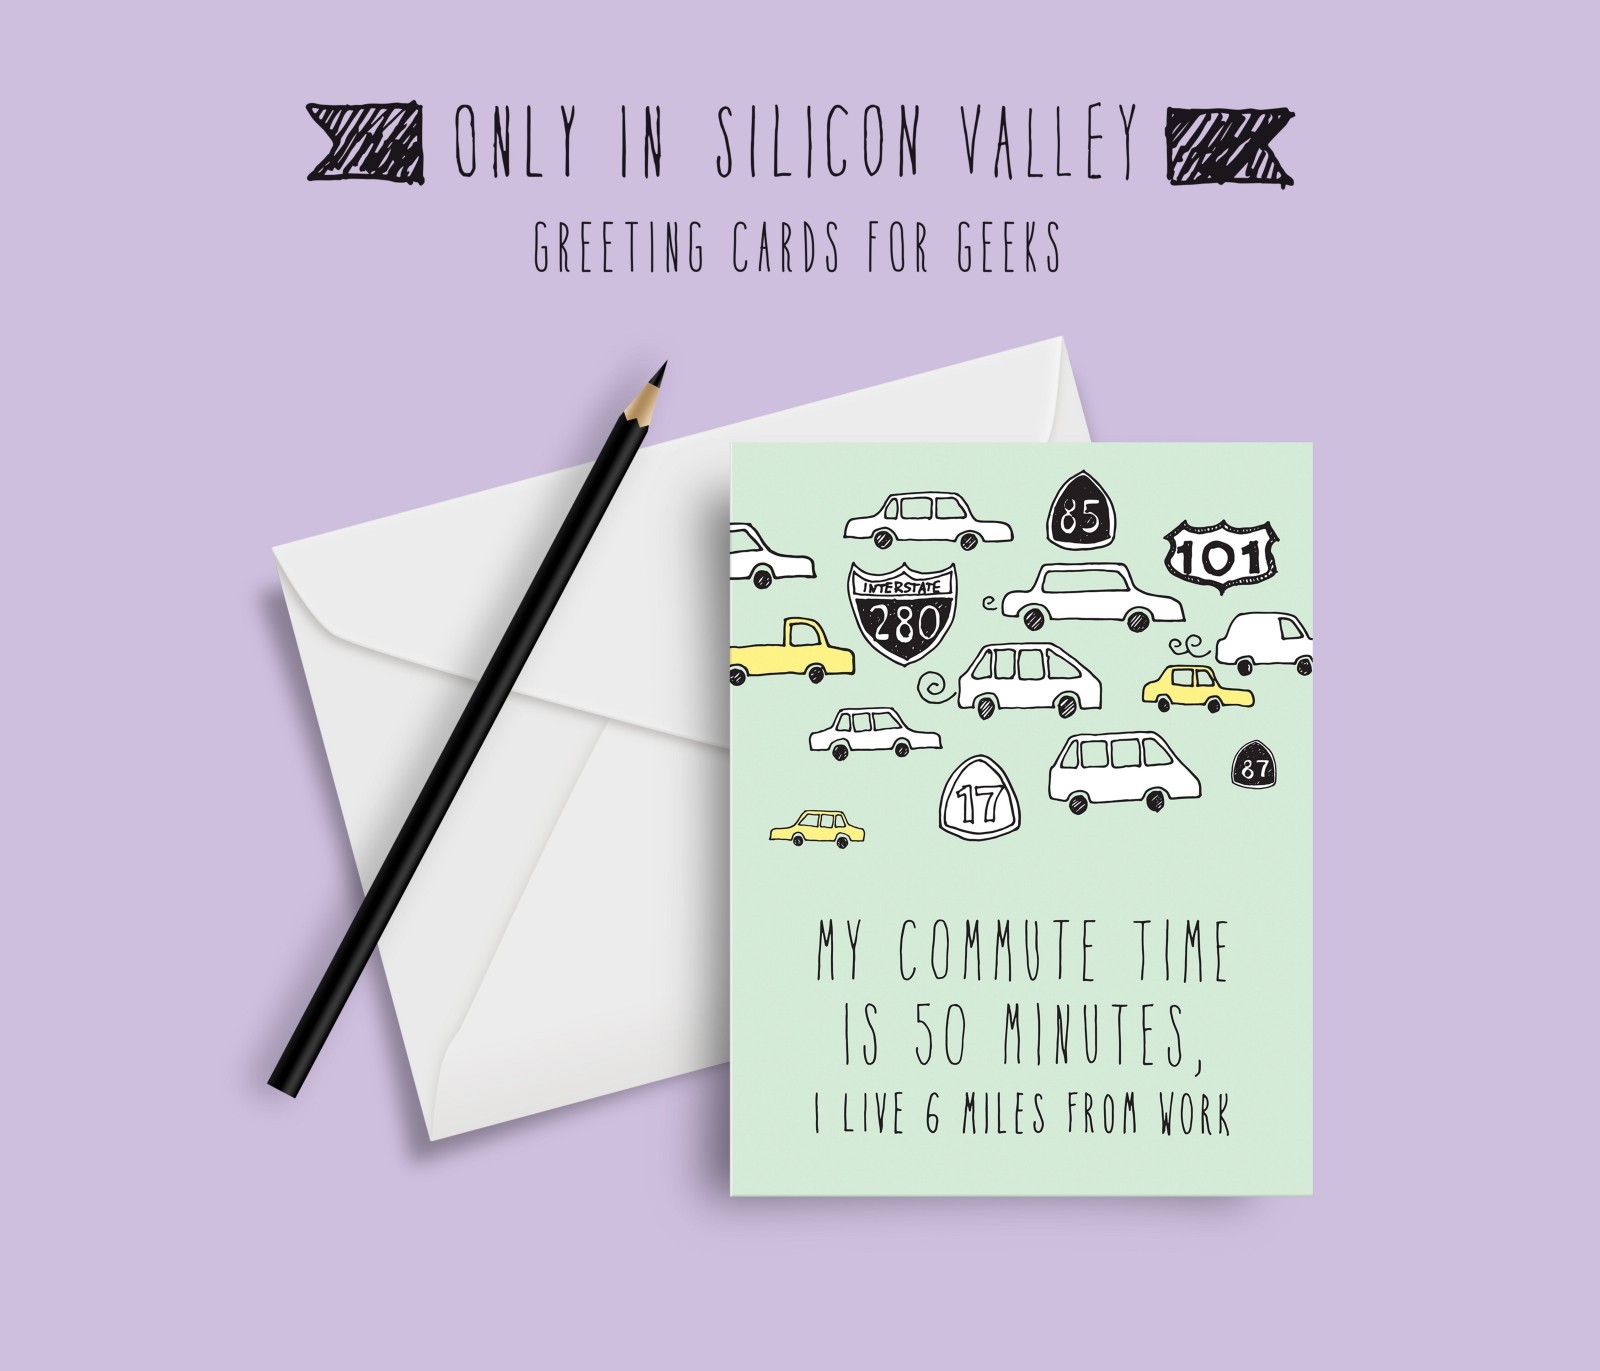 New York San Francisco And Other Cities Have Been Getting Way Too Much Love Until Now Introducing A Greeting Card Collection For Geeks Named Only In